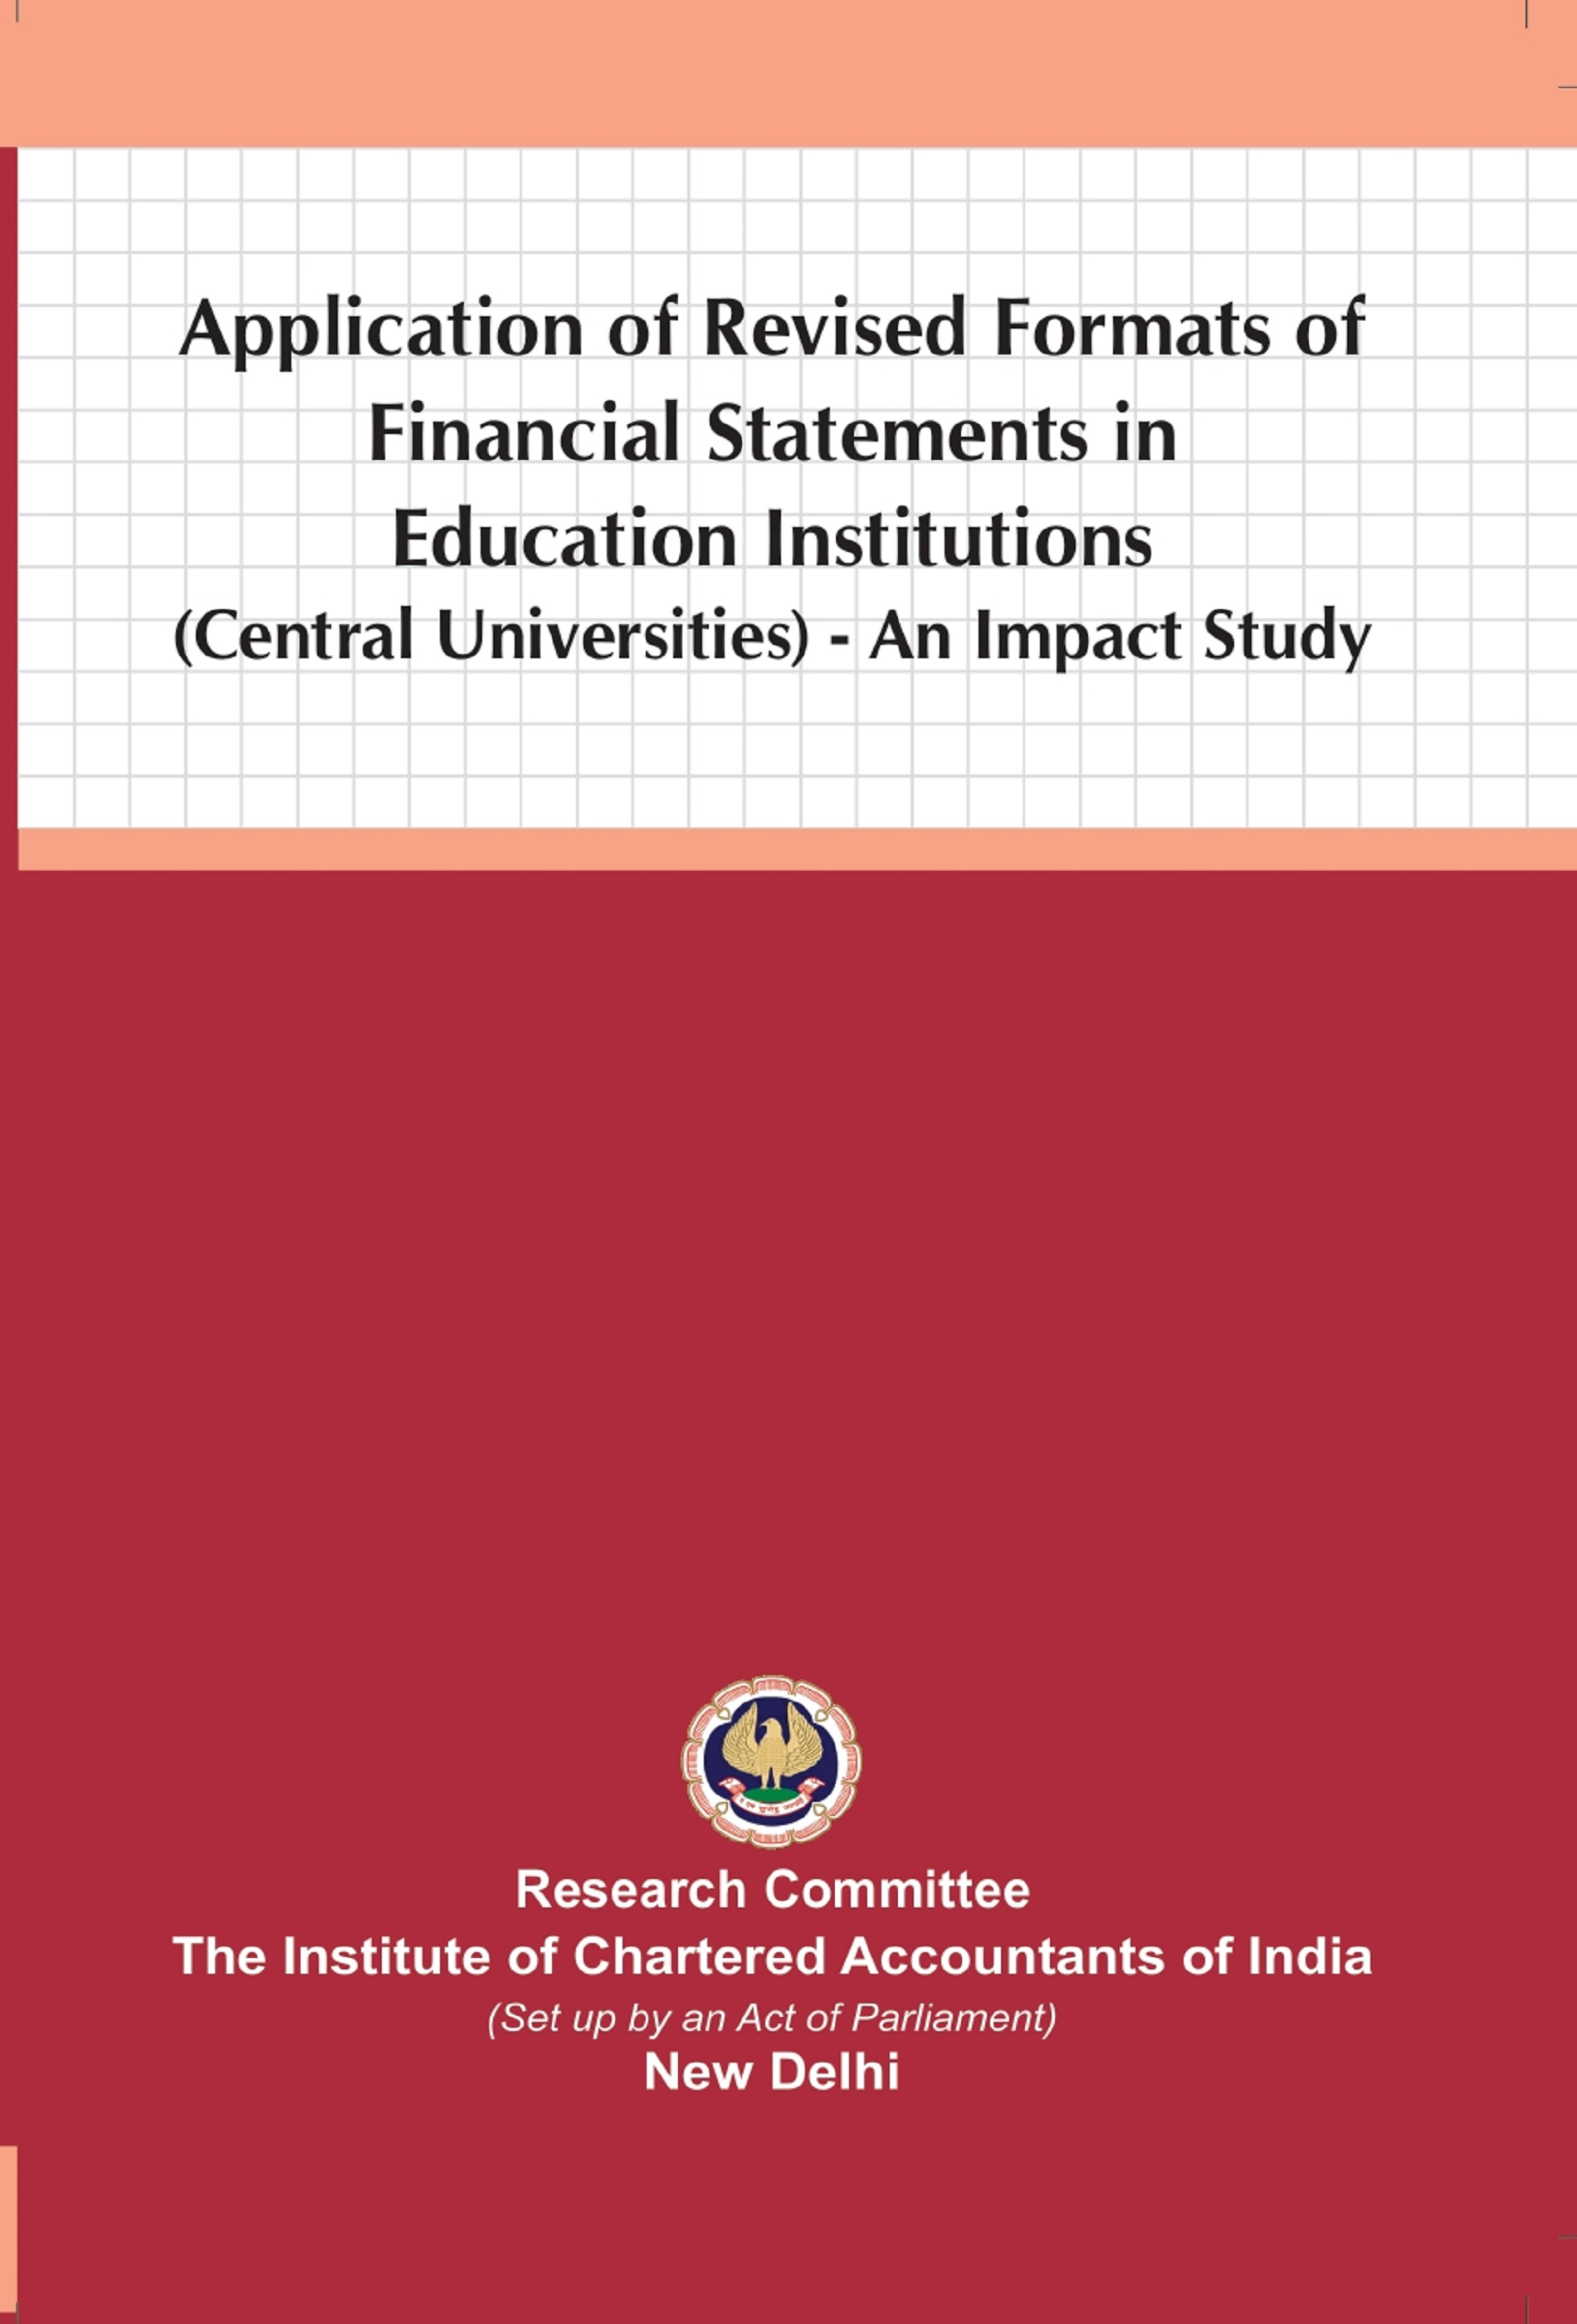 Application of Revised Formats of Financial Statements in Education Institutions (Central Universities) An Impact Study (July, 2020)(